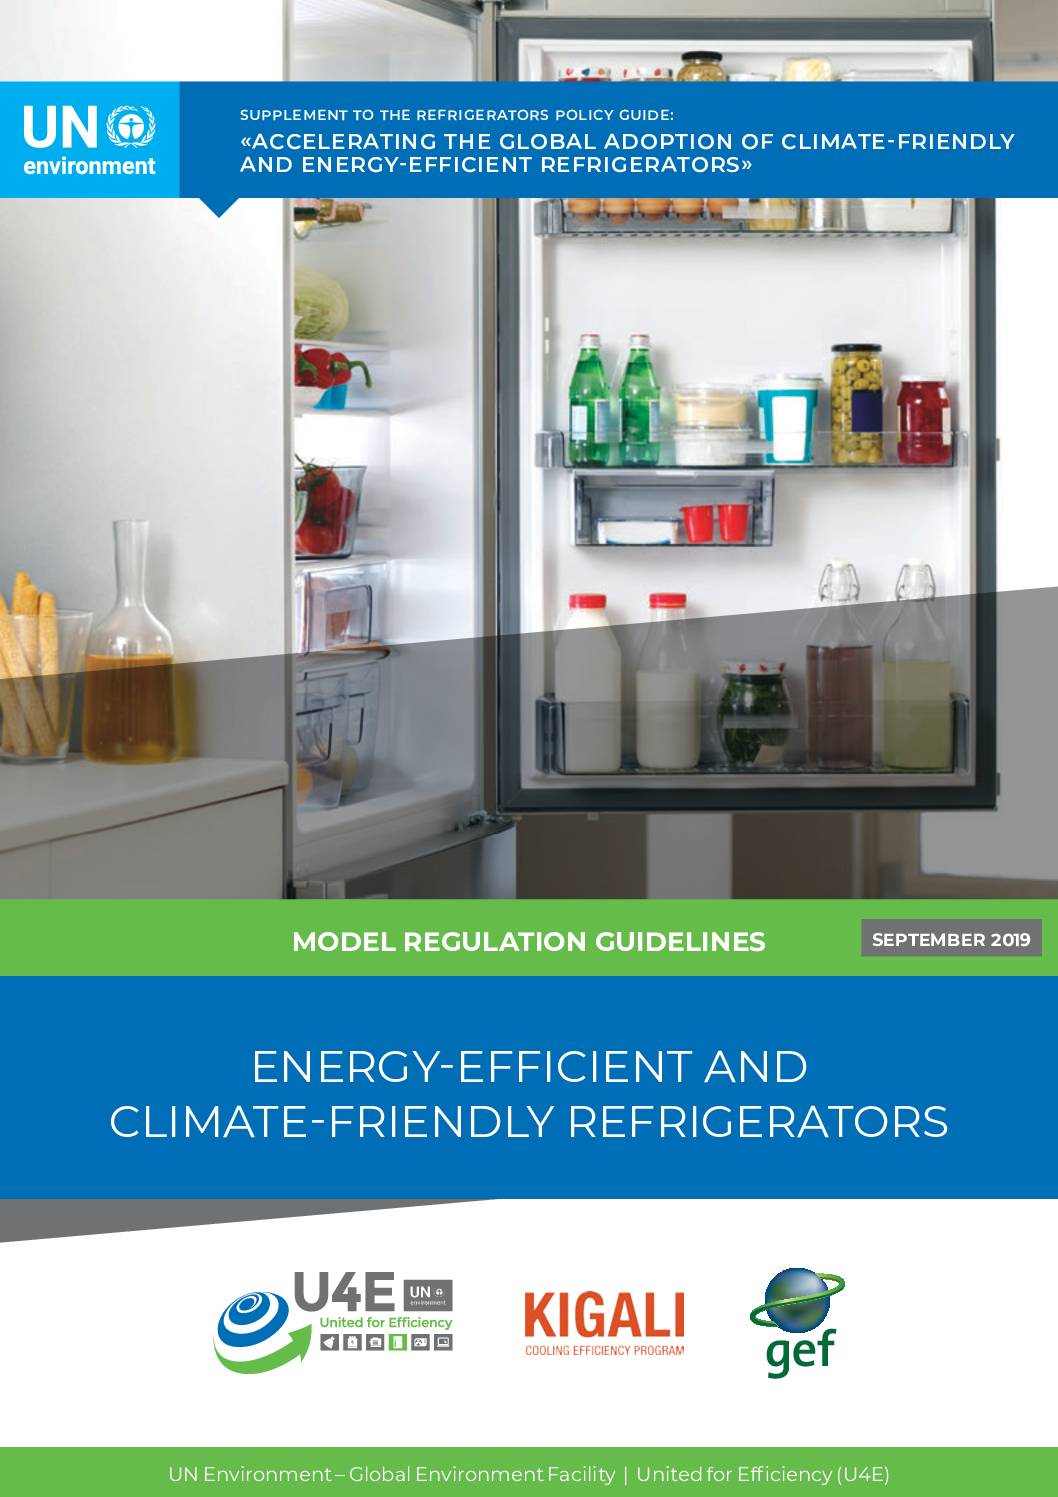 Model Regulation Guidelines For Energy-efficient And Climate-friendly Refrigerating Appliances